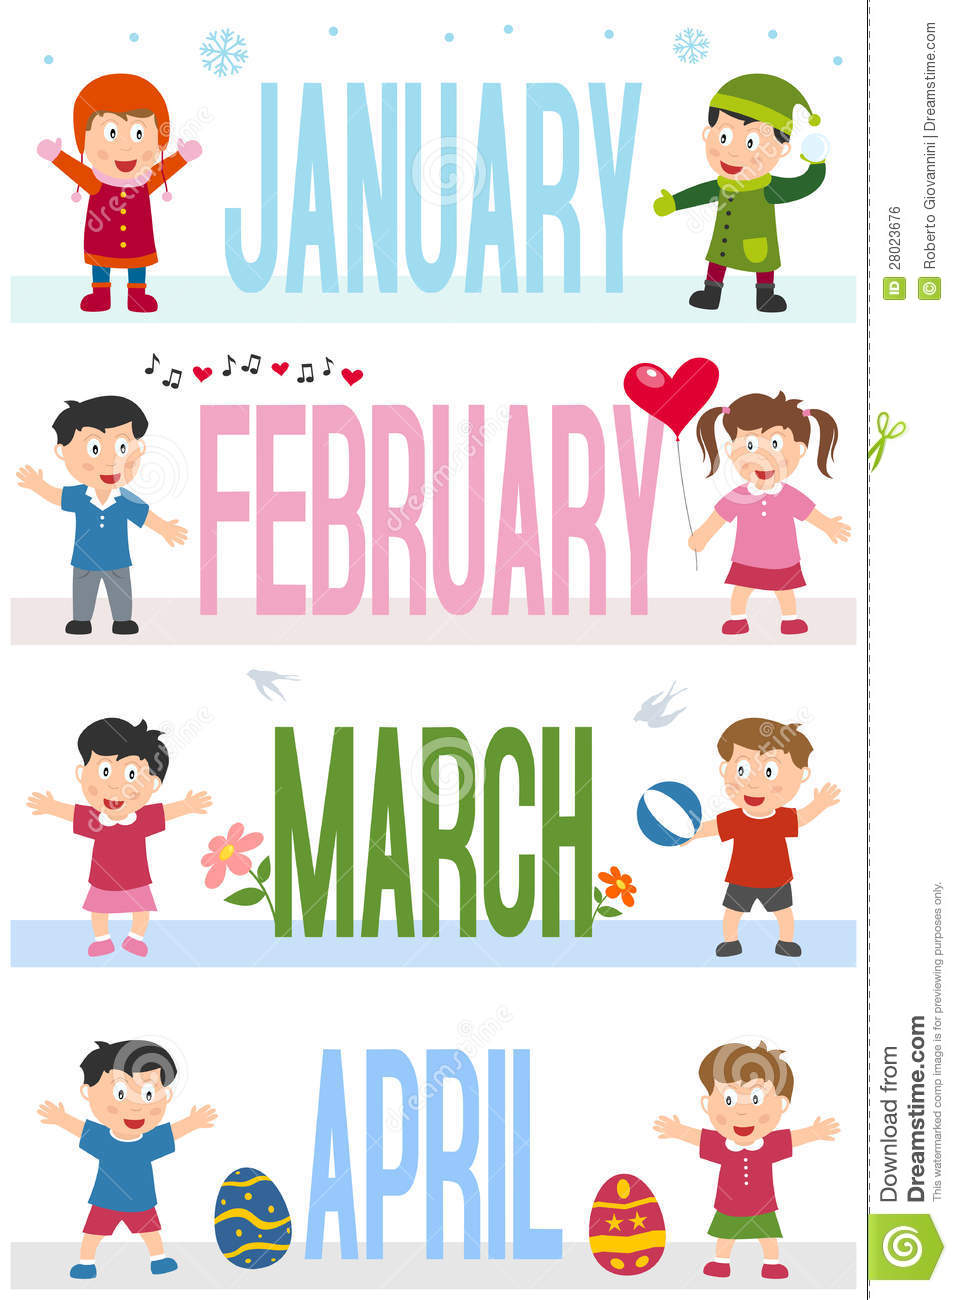 Months Banners With Kids [1] Royalty Free Stock Image ...